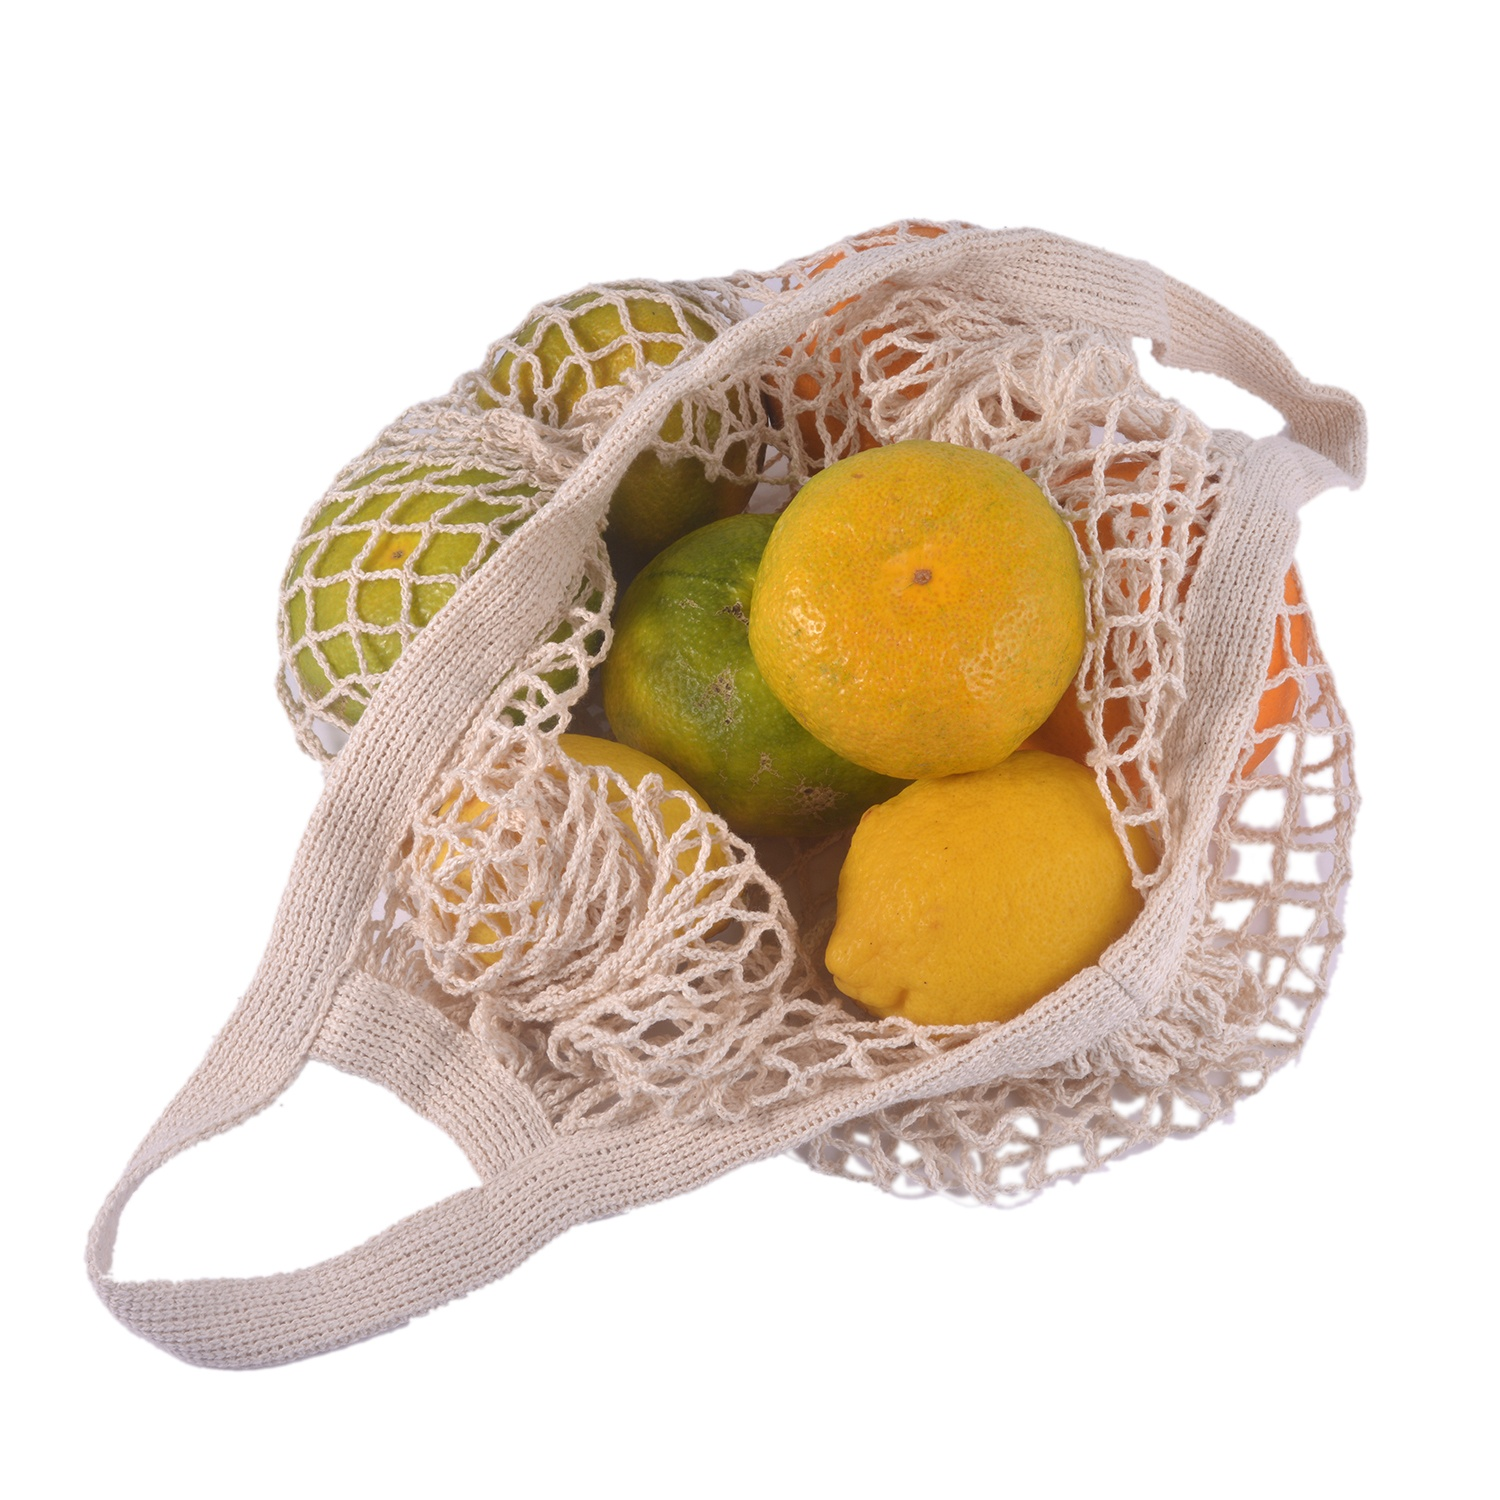 2019 New Mesh Shopping Bag Reusable String Fruit Storage Handbag <strong>Totes</strong> Women Shopping Mesh Net Woven Bag Shop Grocery <strong>Tote</strong> Bag